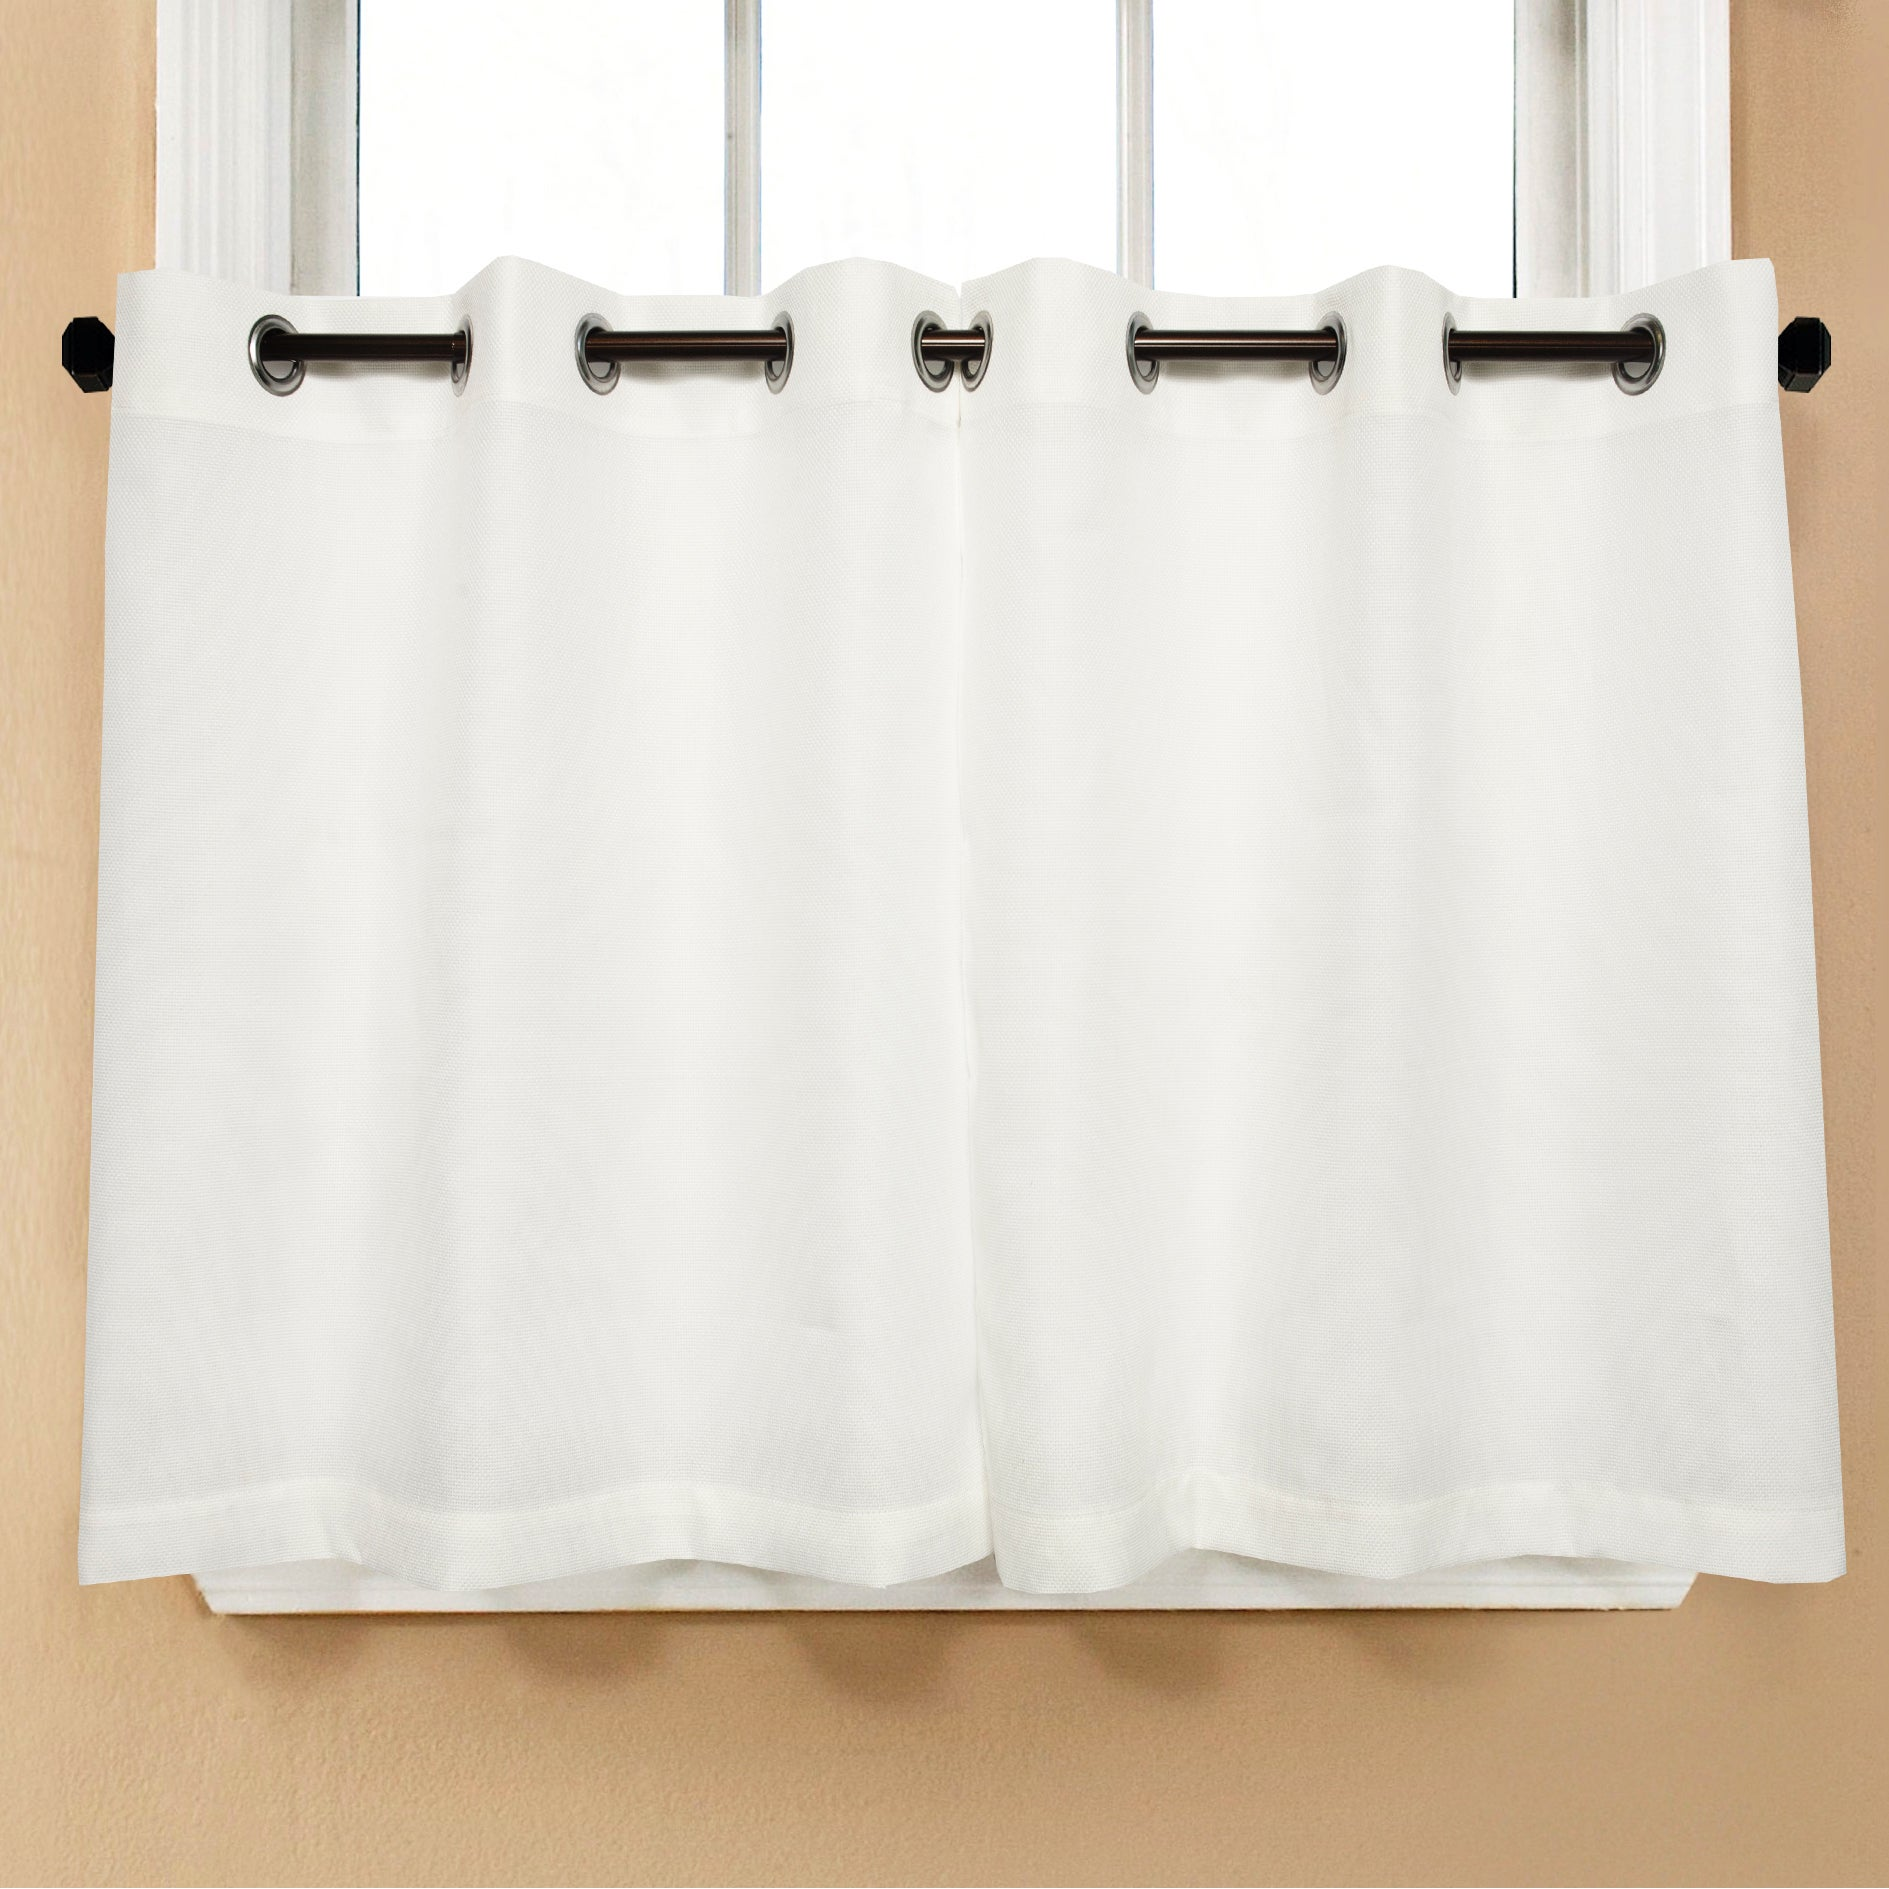 sheer curtain designer songbird white kitchen curtains thecurtainshop com